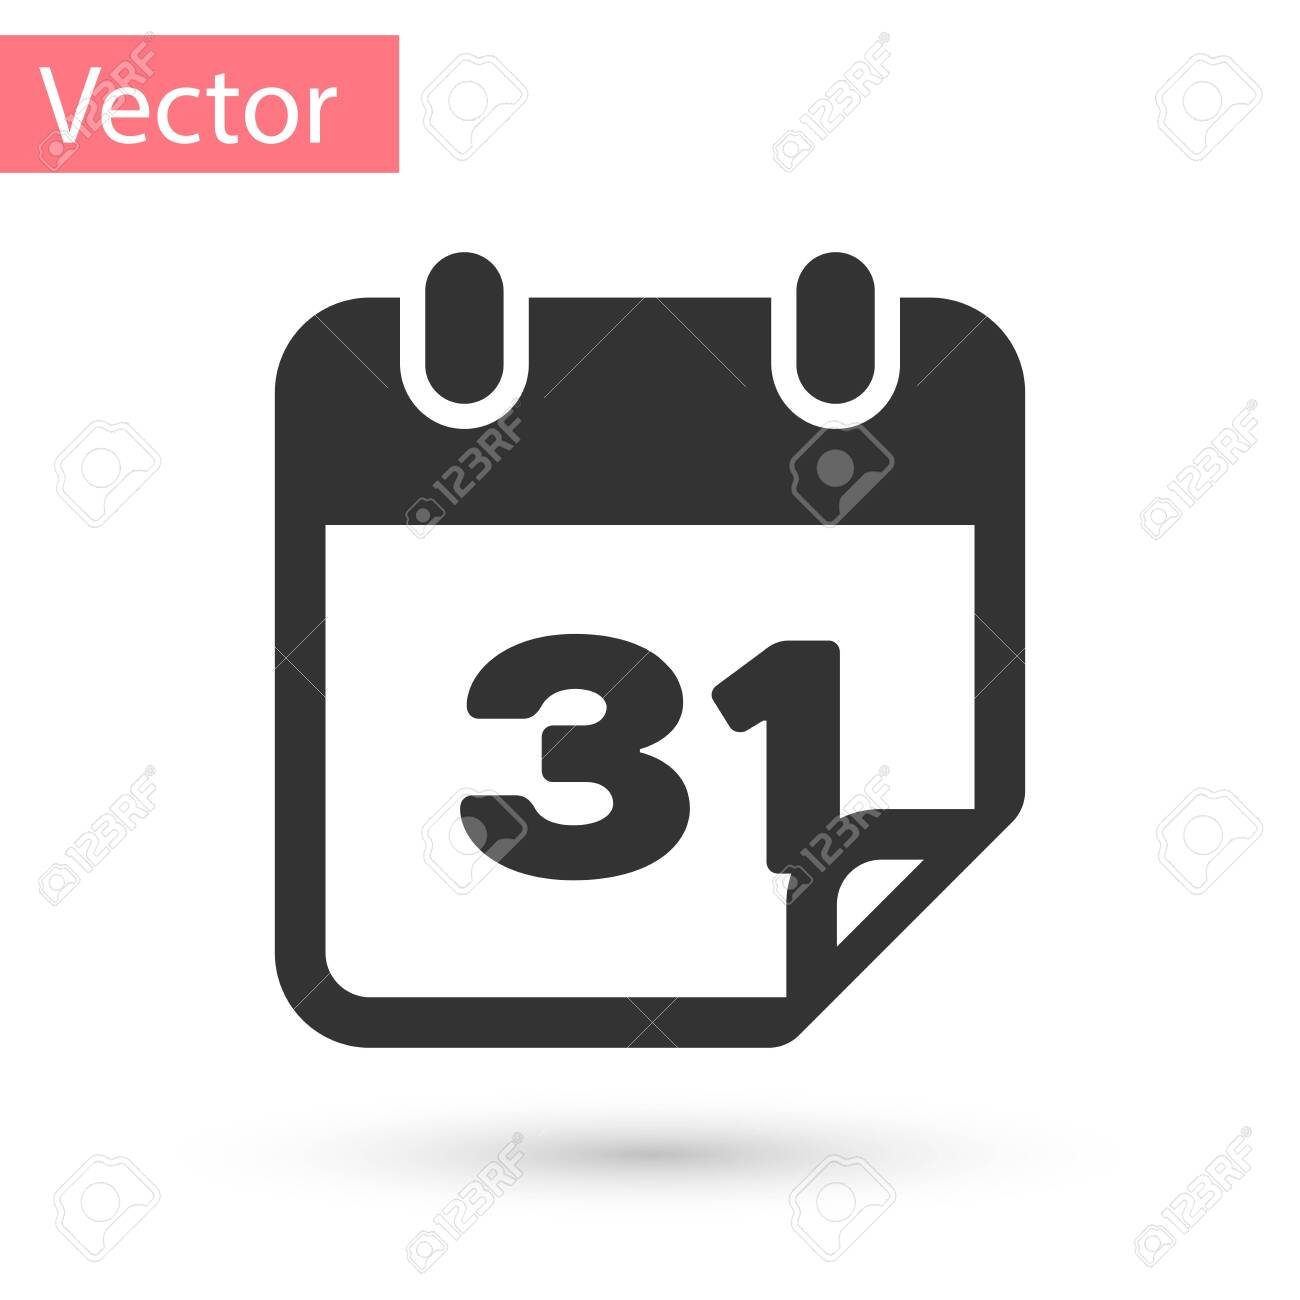 Grey Calendar Icon Isolated On White Background. Vector Illustration inside Calendar Icon Grey